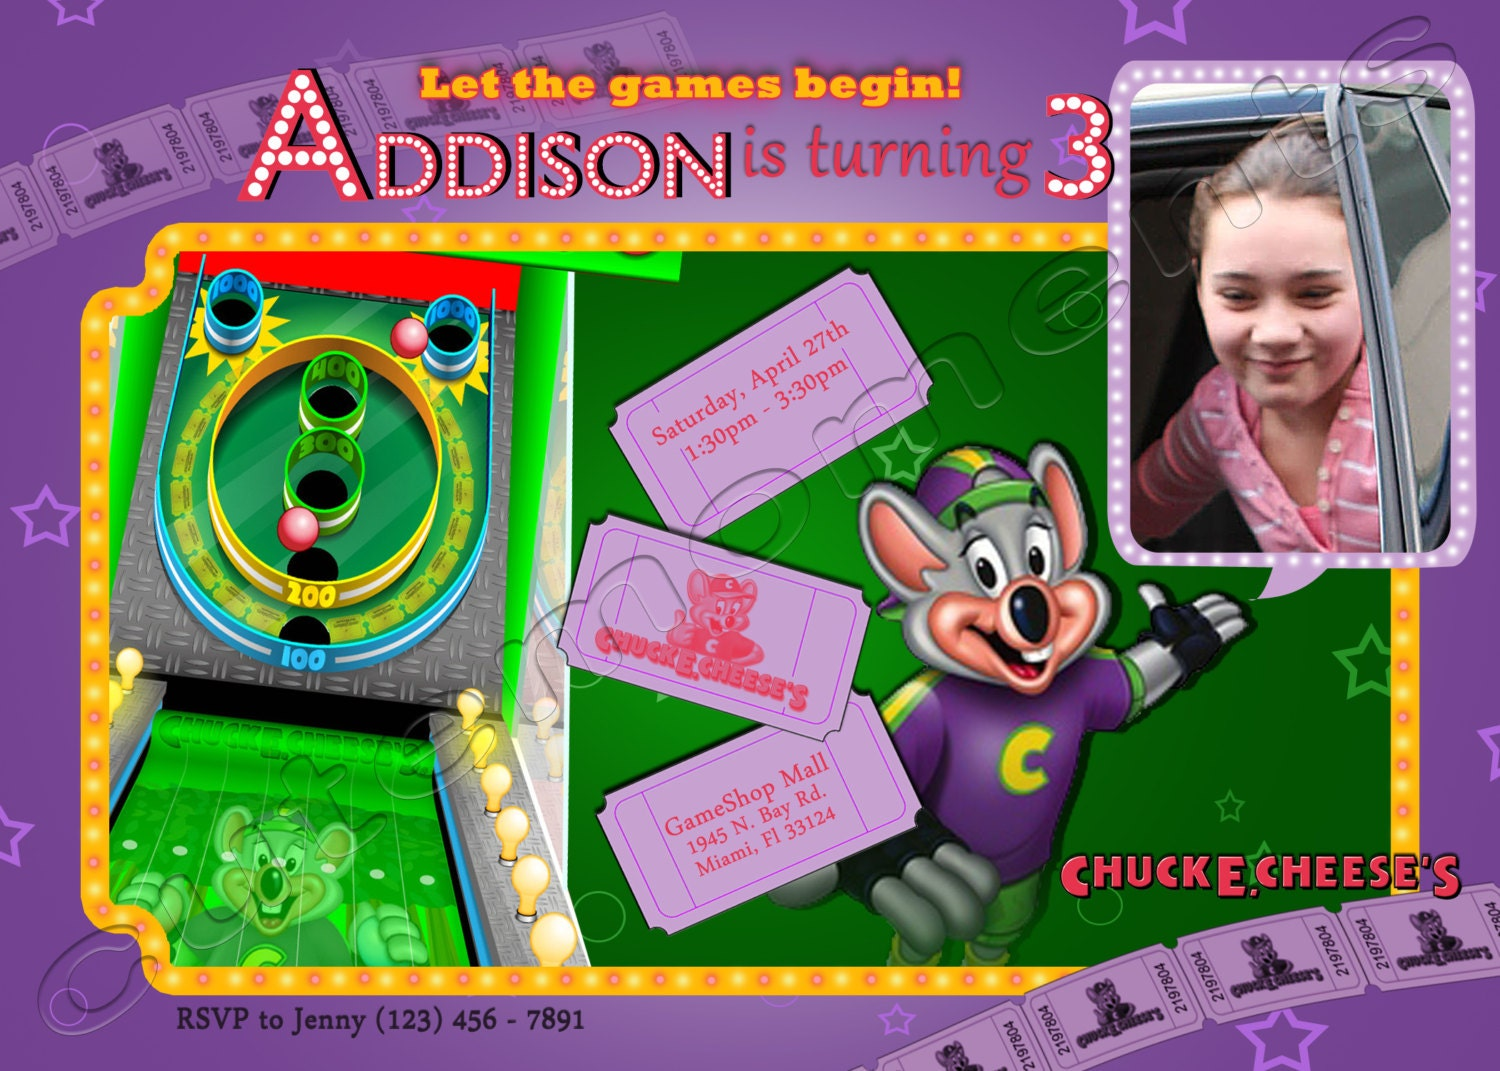 Chuck e cheeses personalized birthday party invitation zoom filmwisefo